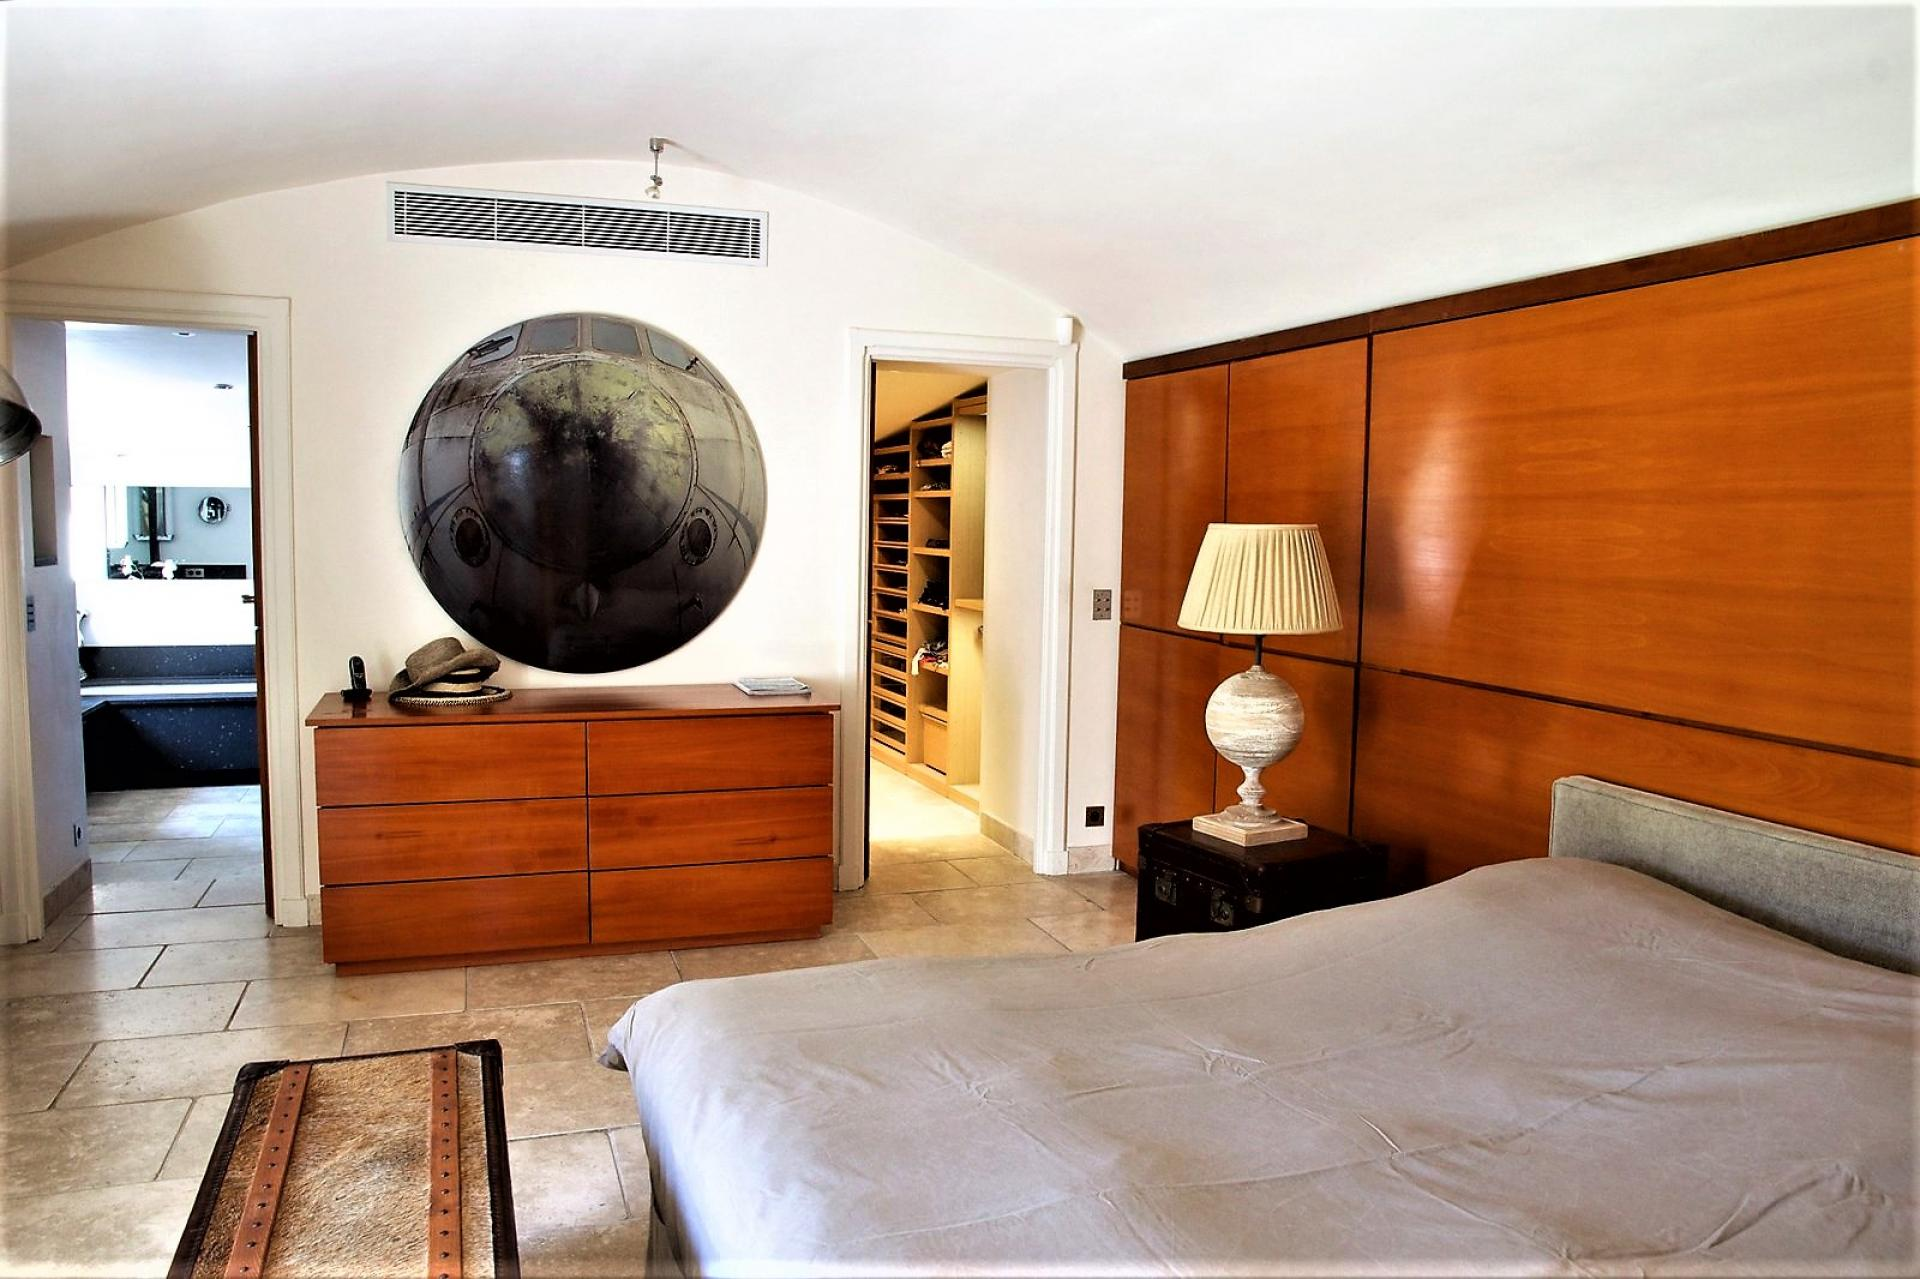 THE MASTER BEDROOM IN AN HOLIDAY VILLA WITH ITS DRESSING AND BATHROOM